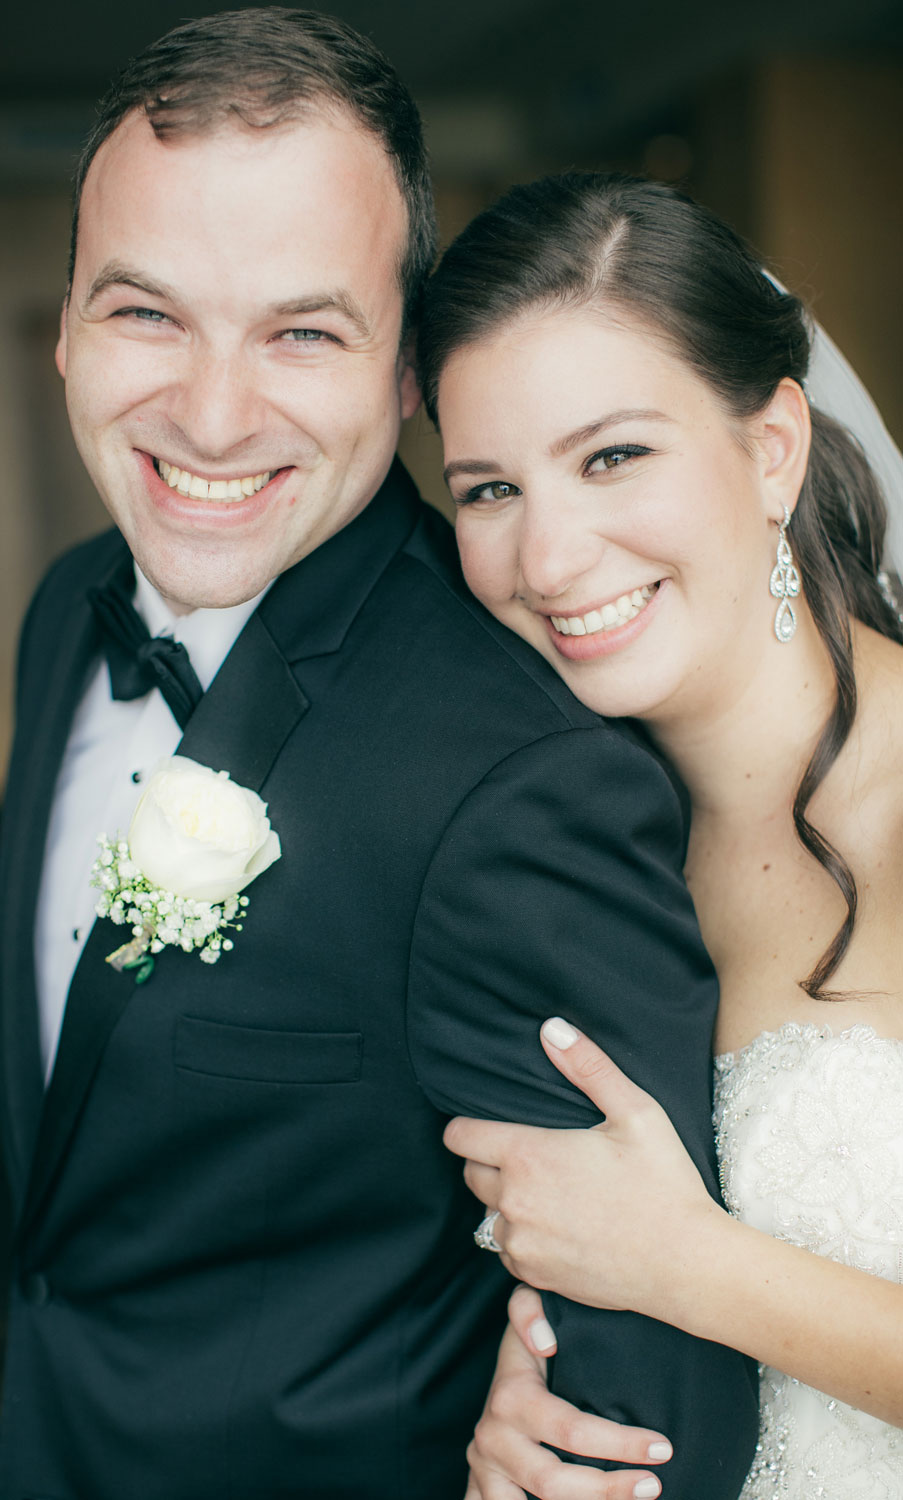 four-seasons-seattle-wedding-clane-gessel-photos-10